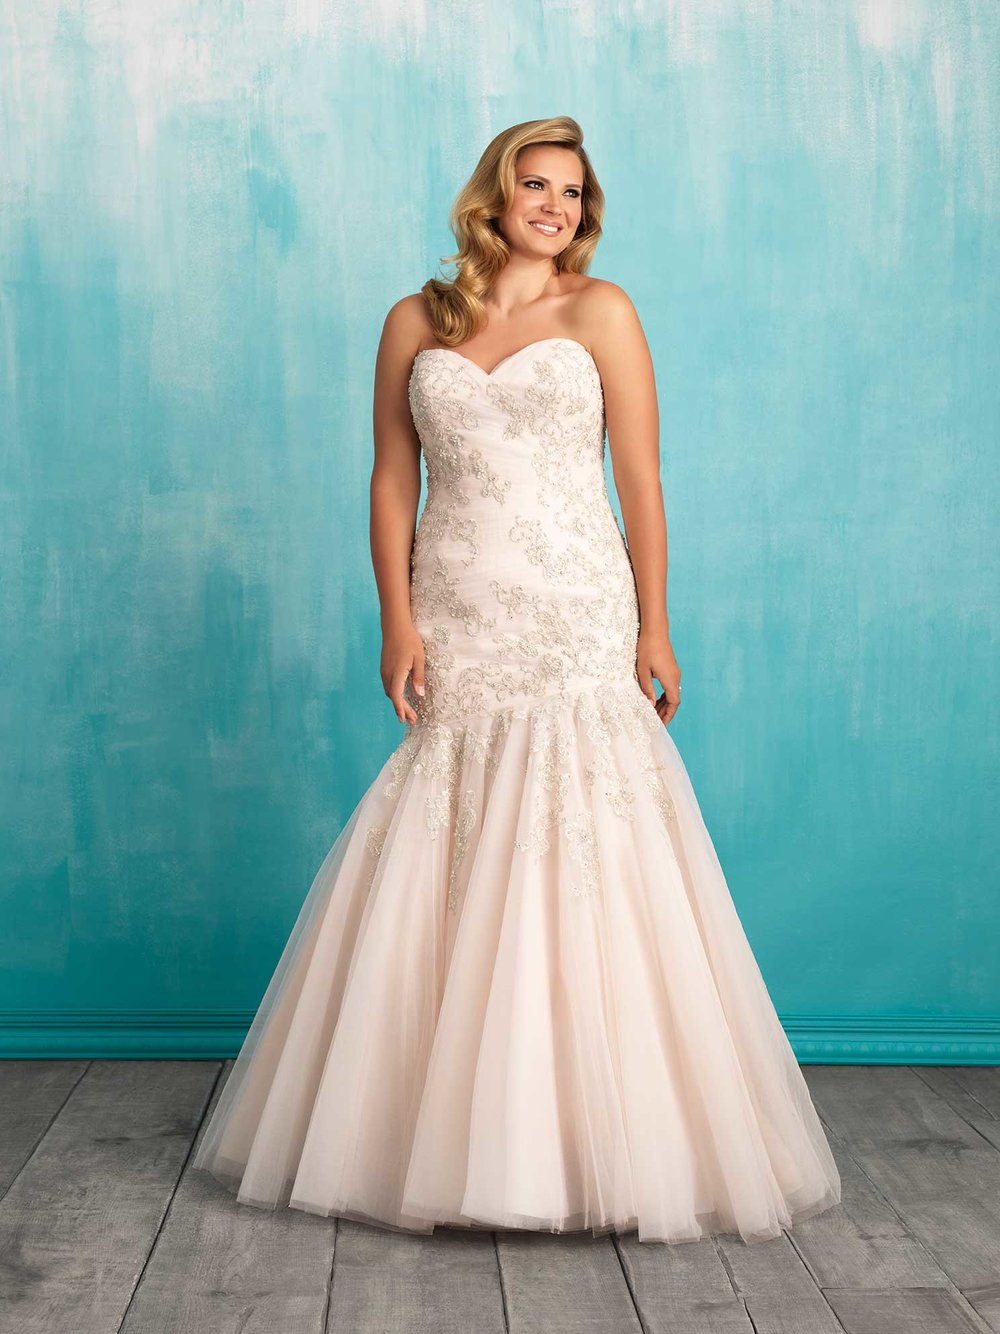 Plus Size Wedding Gowns All My Heart Bridal 2017 Plus Size